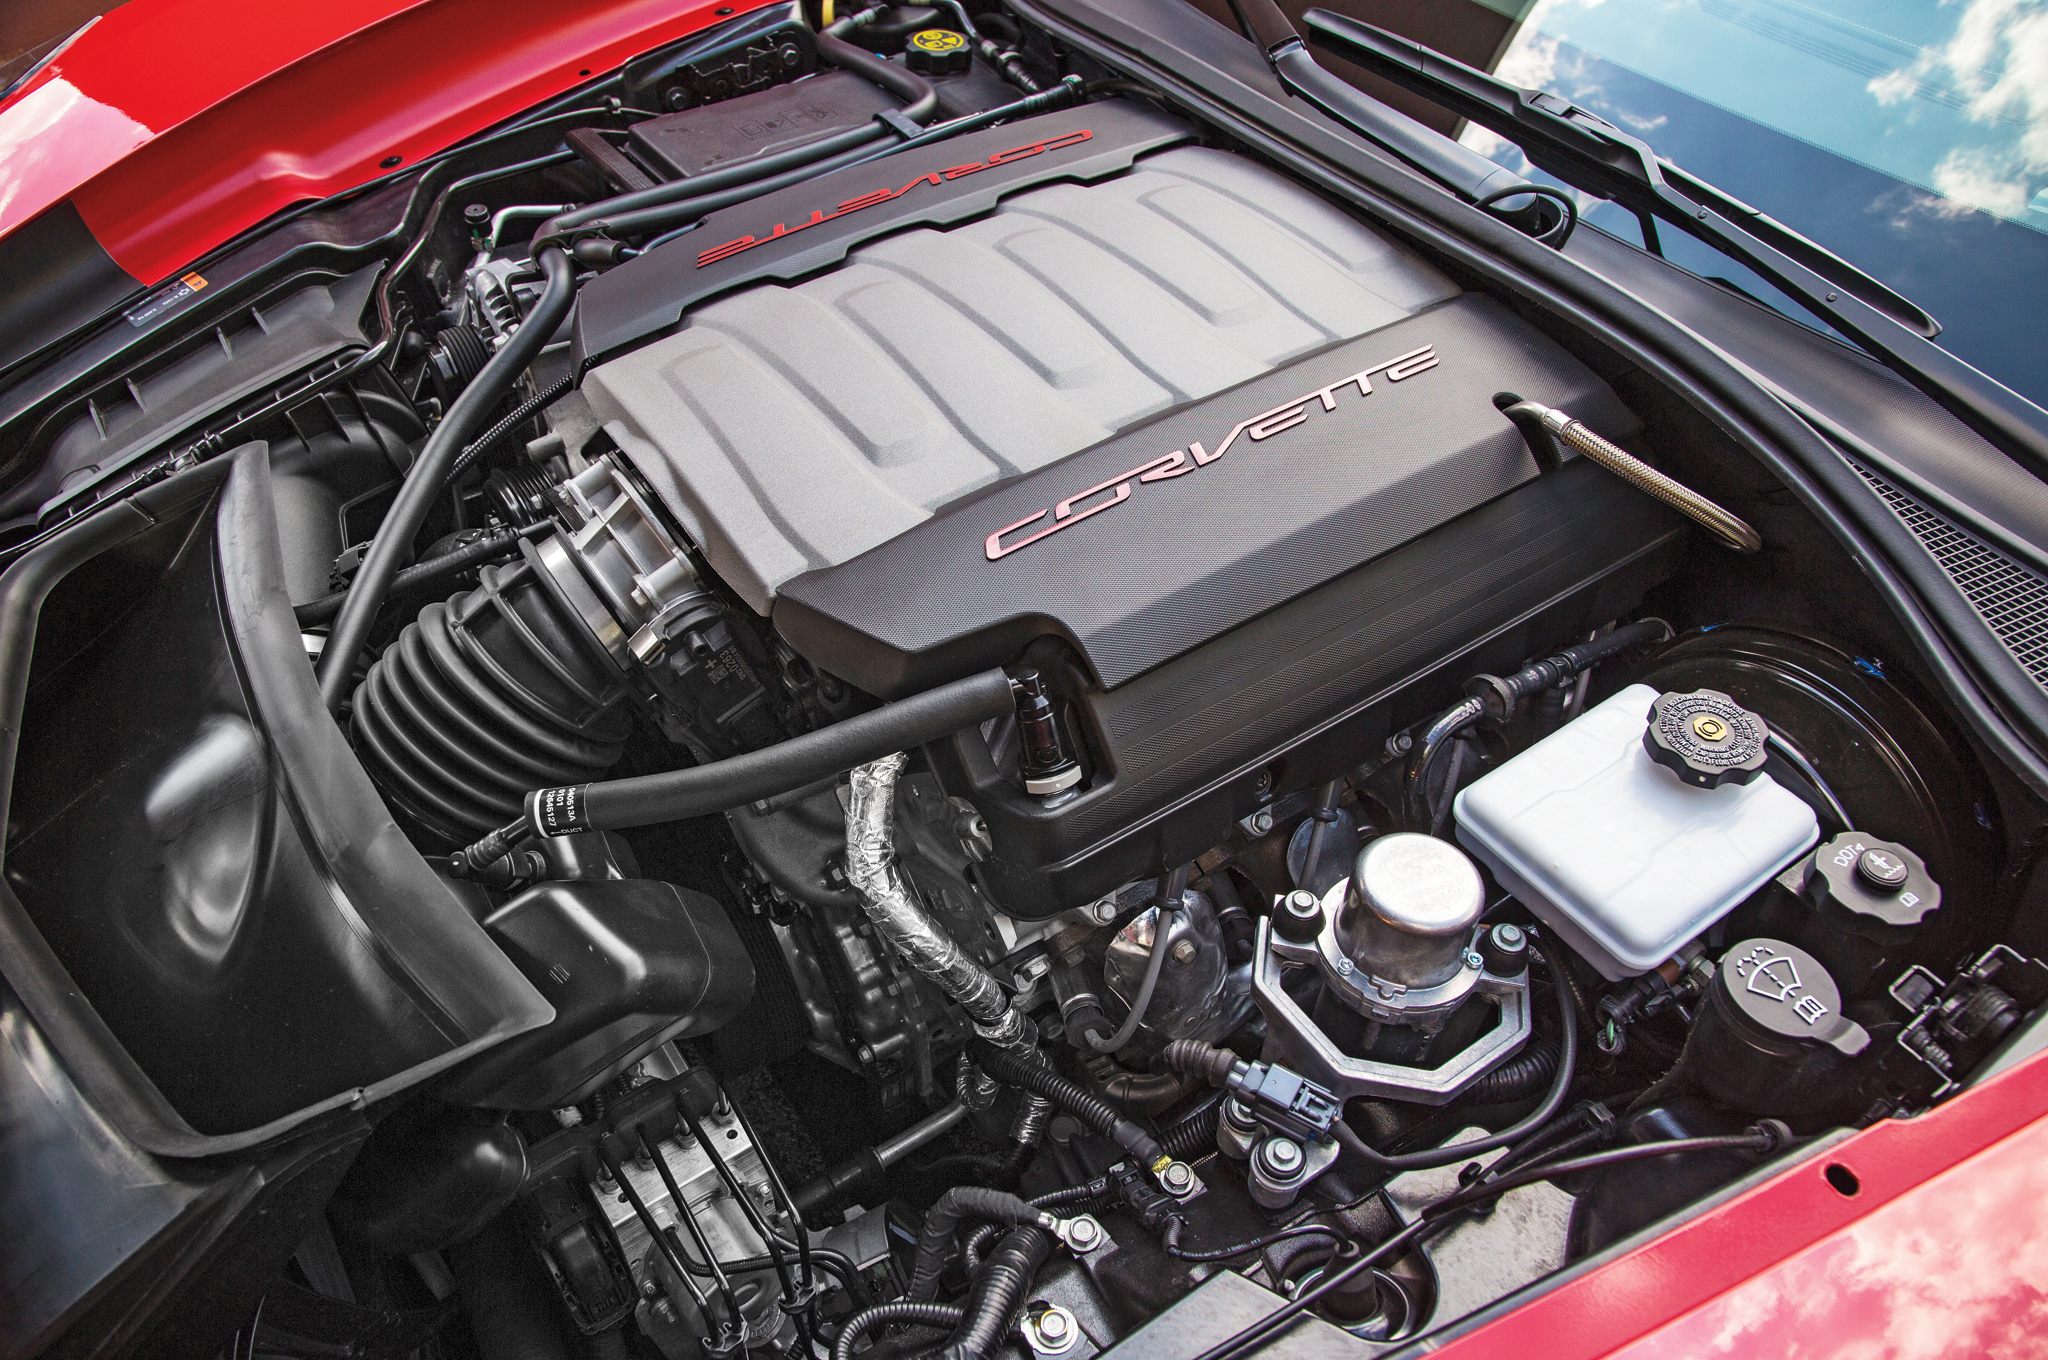 2014 Chevrolet Corvette Stingray Z51 Engine Photo (Photo 3 of 7)